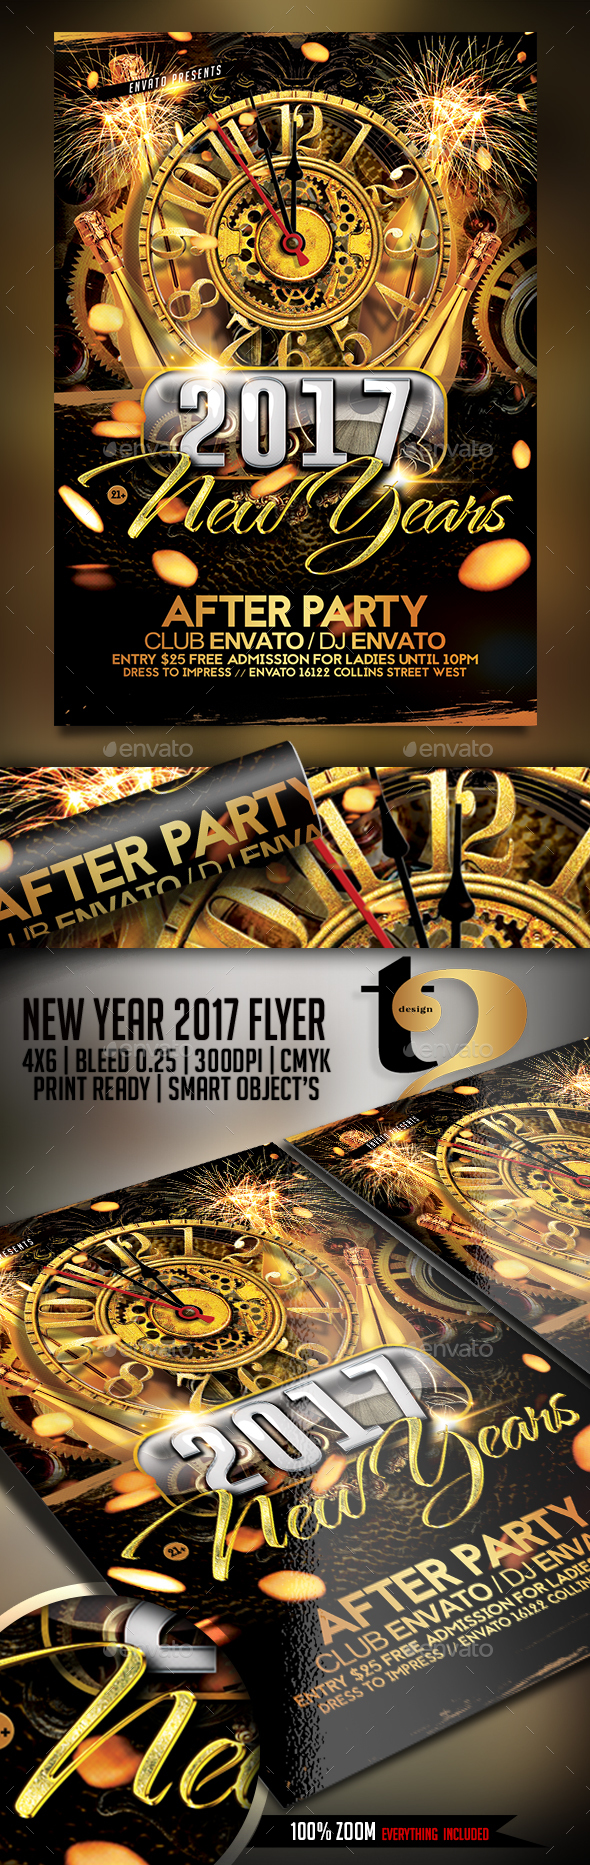 New Year 2017 Flyer Templates — Photoshop PSD #cocktail #2017 party • Download ➝ https://graphicriver.net/item/new-year-2017-flyer-templates/19098679?ref=pxcr